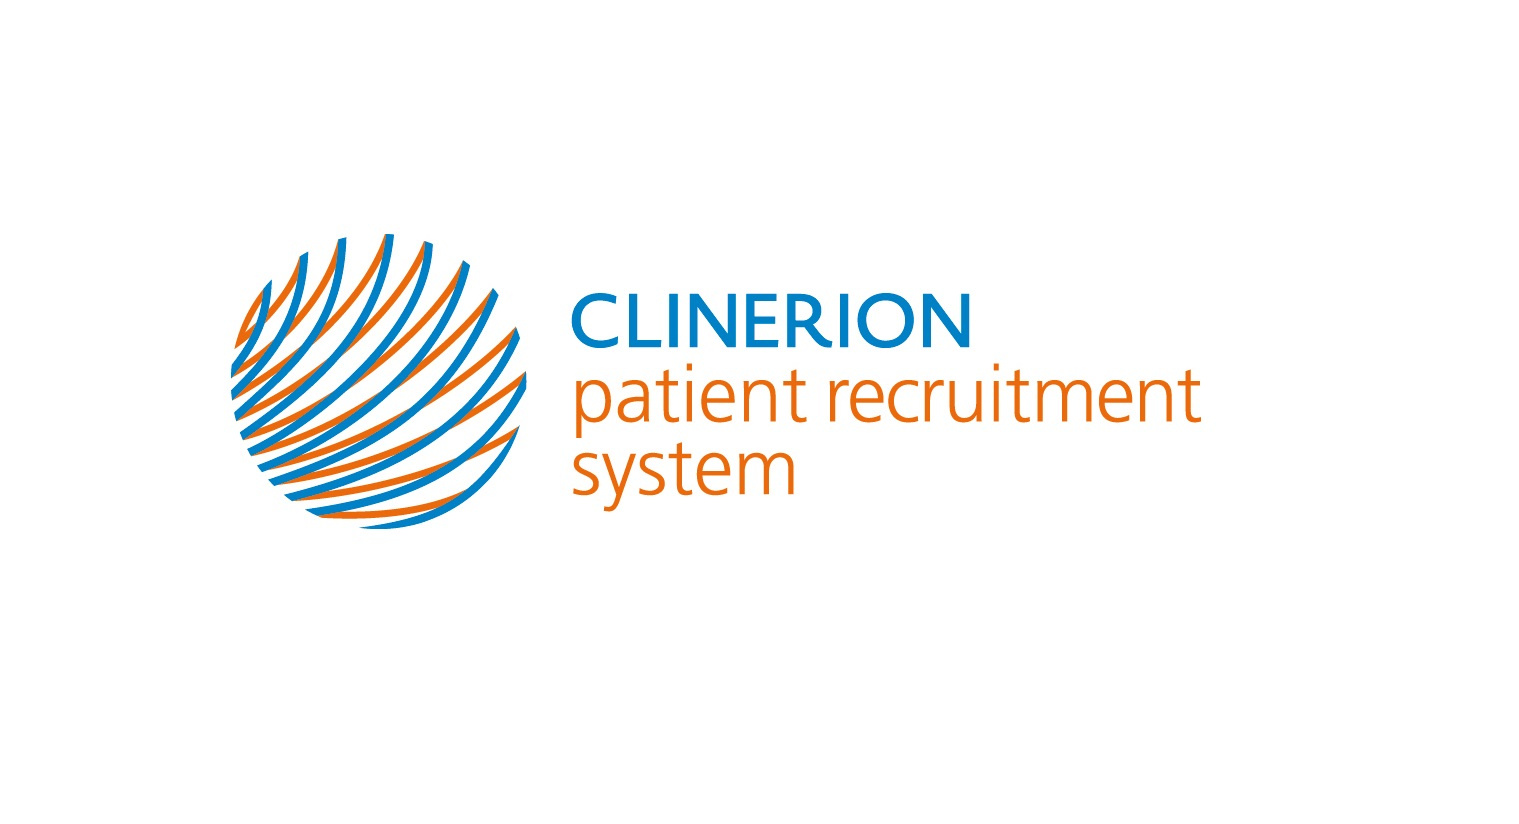 Clinerion Patient Recruitment System